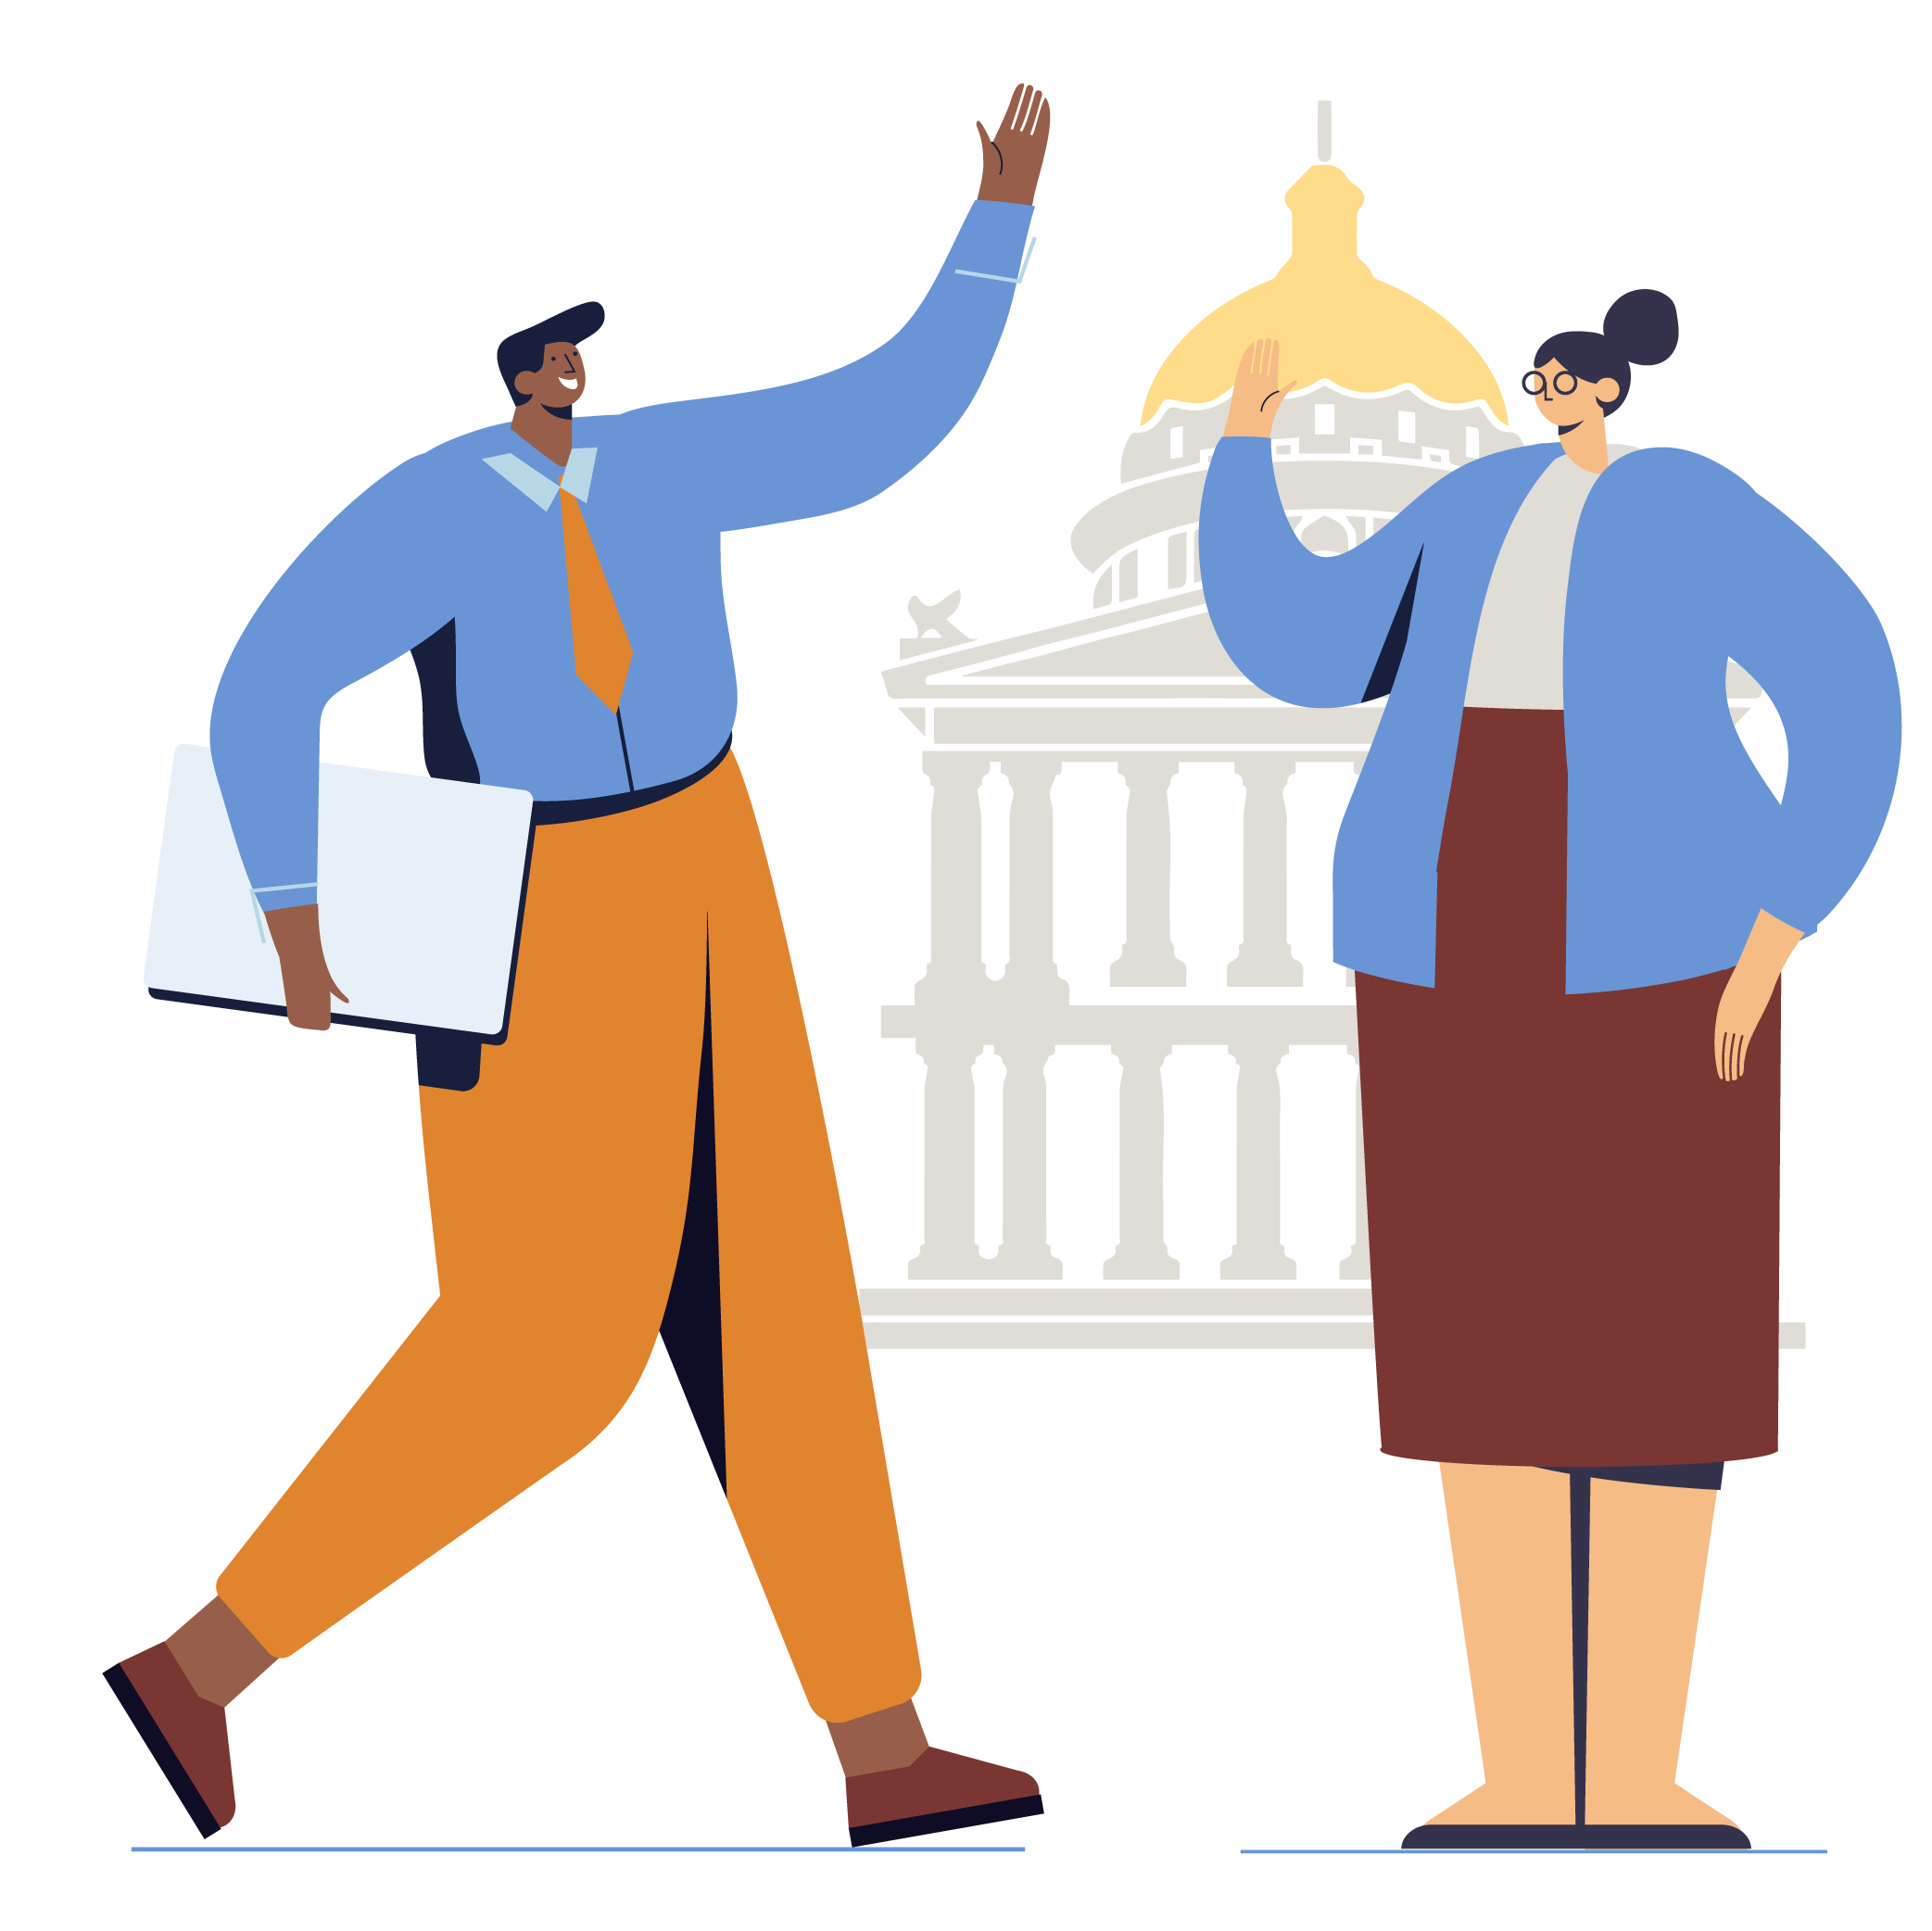 Illustration man wearing tie holding documents and woman wearing glasses standing in front of capital building